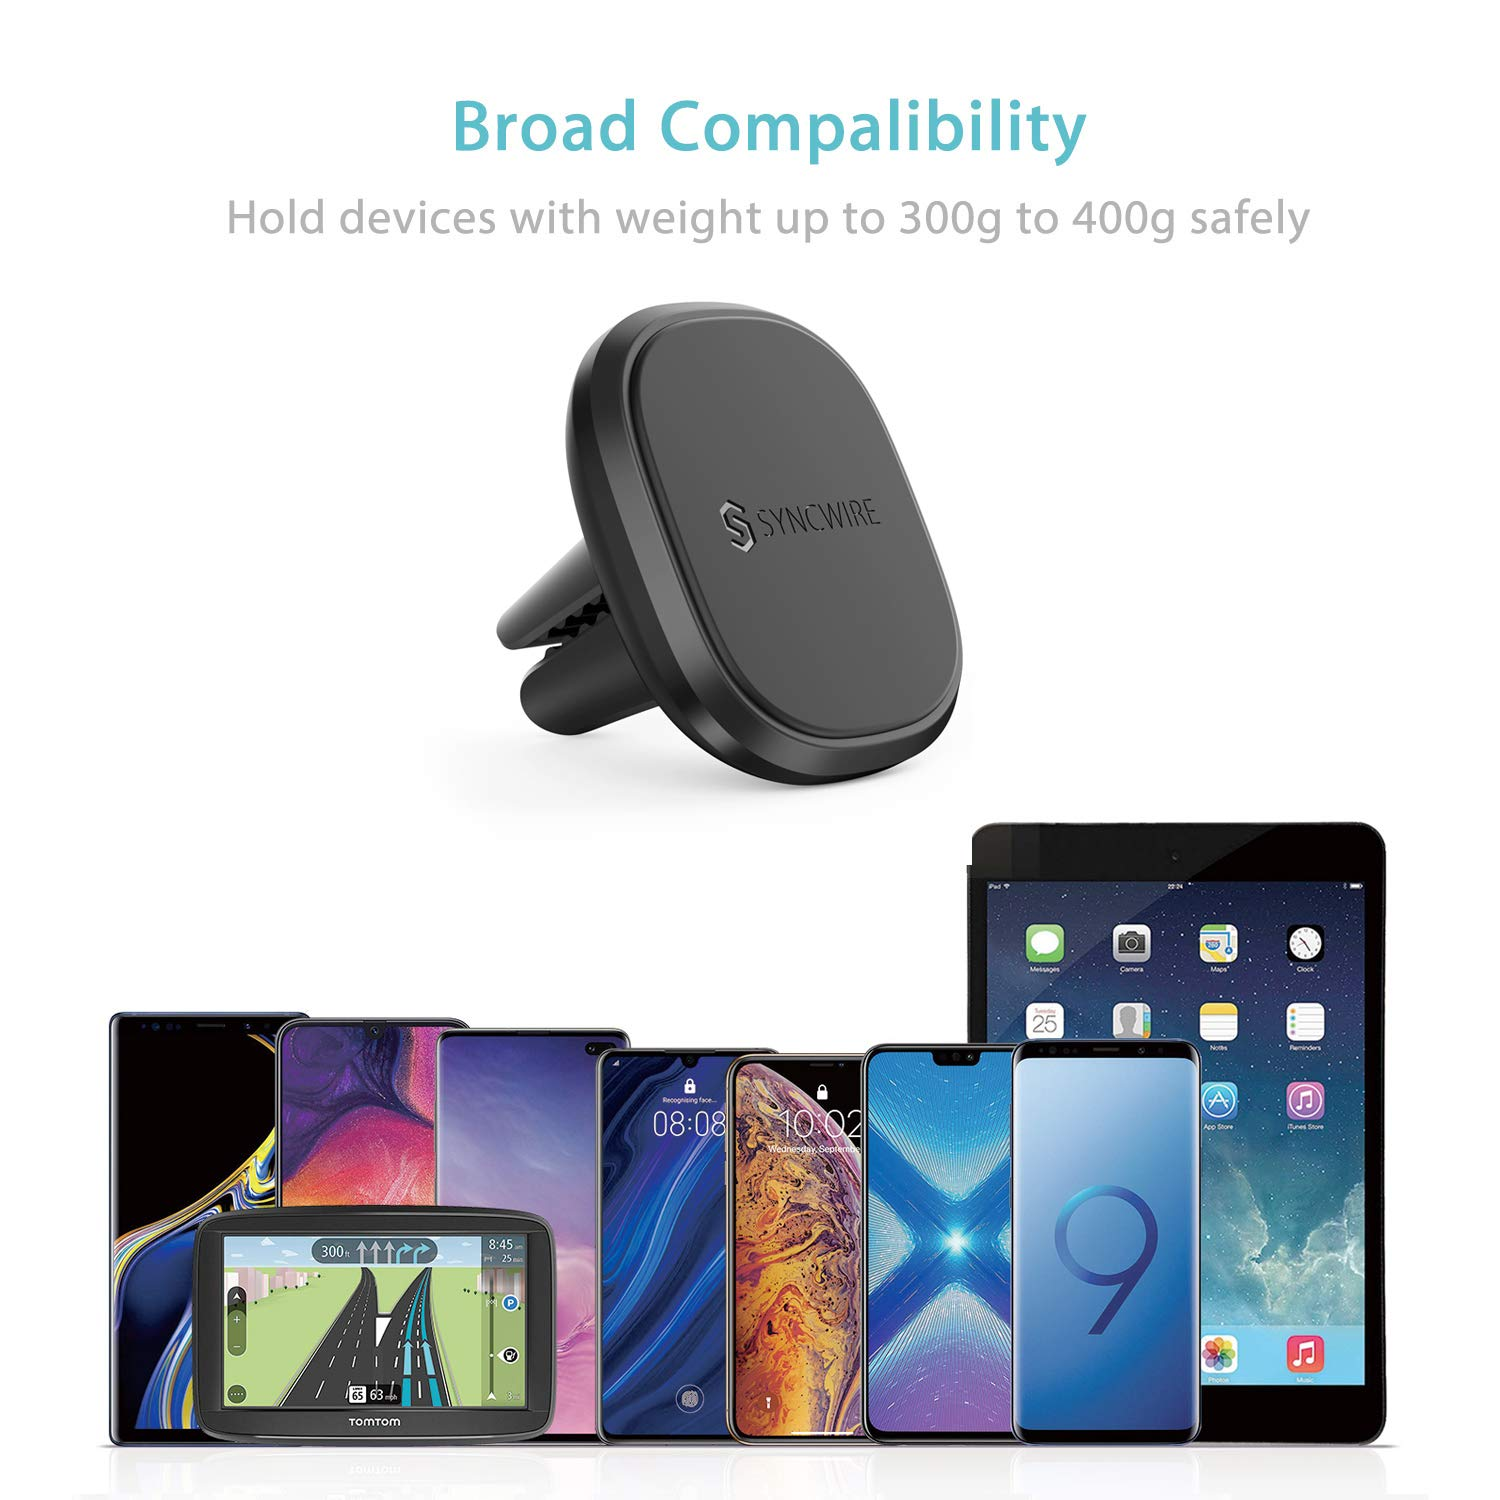 Samsung Galaxy S9//S8 Air Vent Cell Phone Holder Universal with 4 Extra Strong Magnets Syncwire Magnetic Phone Car Mount N48, 105mm Nexus and More LG Compatible with iPhone X//8//8 Plus//7//7 Plus